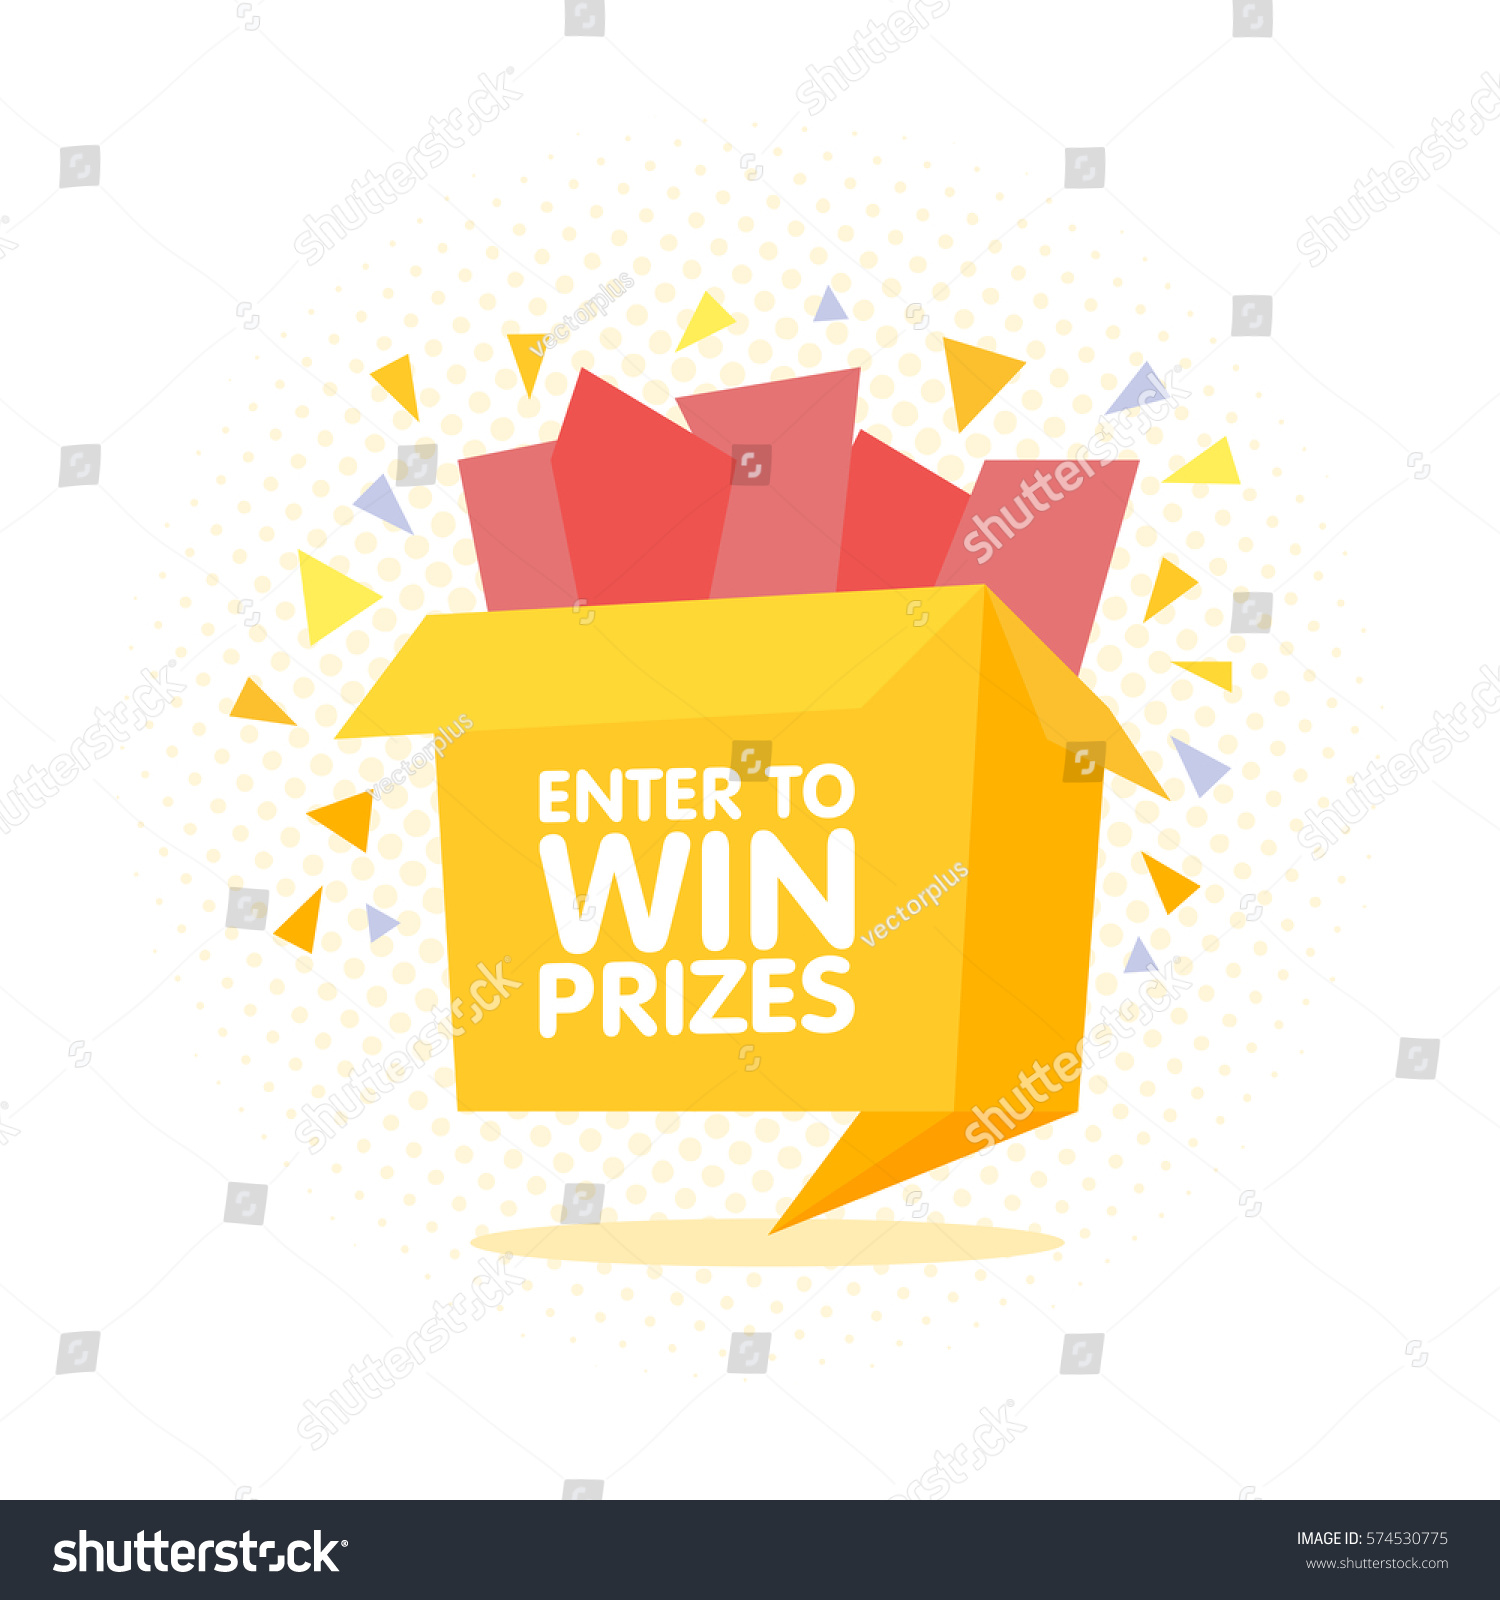 Enter win prizes gift box cartoon 574530775 enter to win prizes gift box cartoon origami style vector illustration negle Image collections